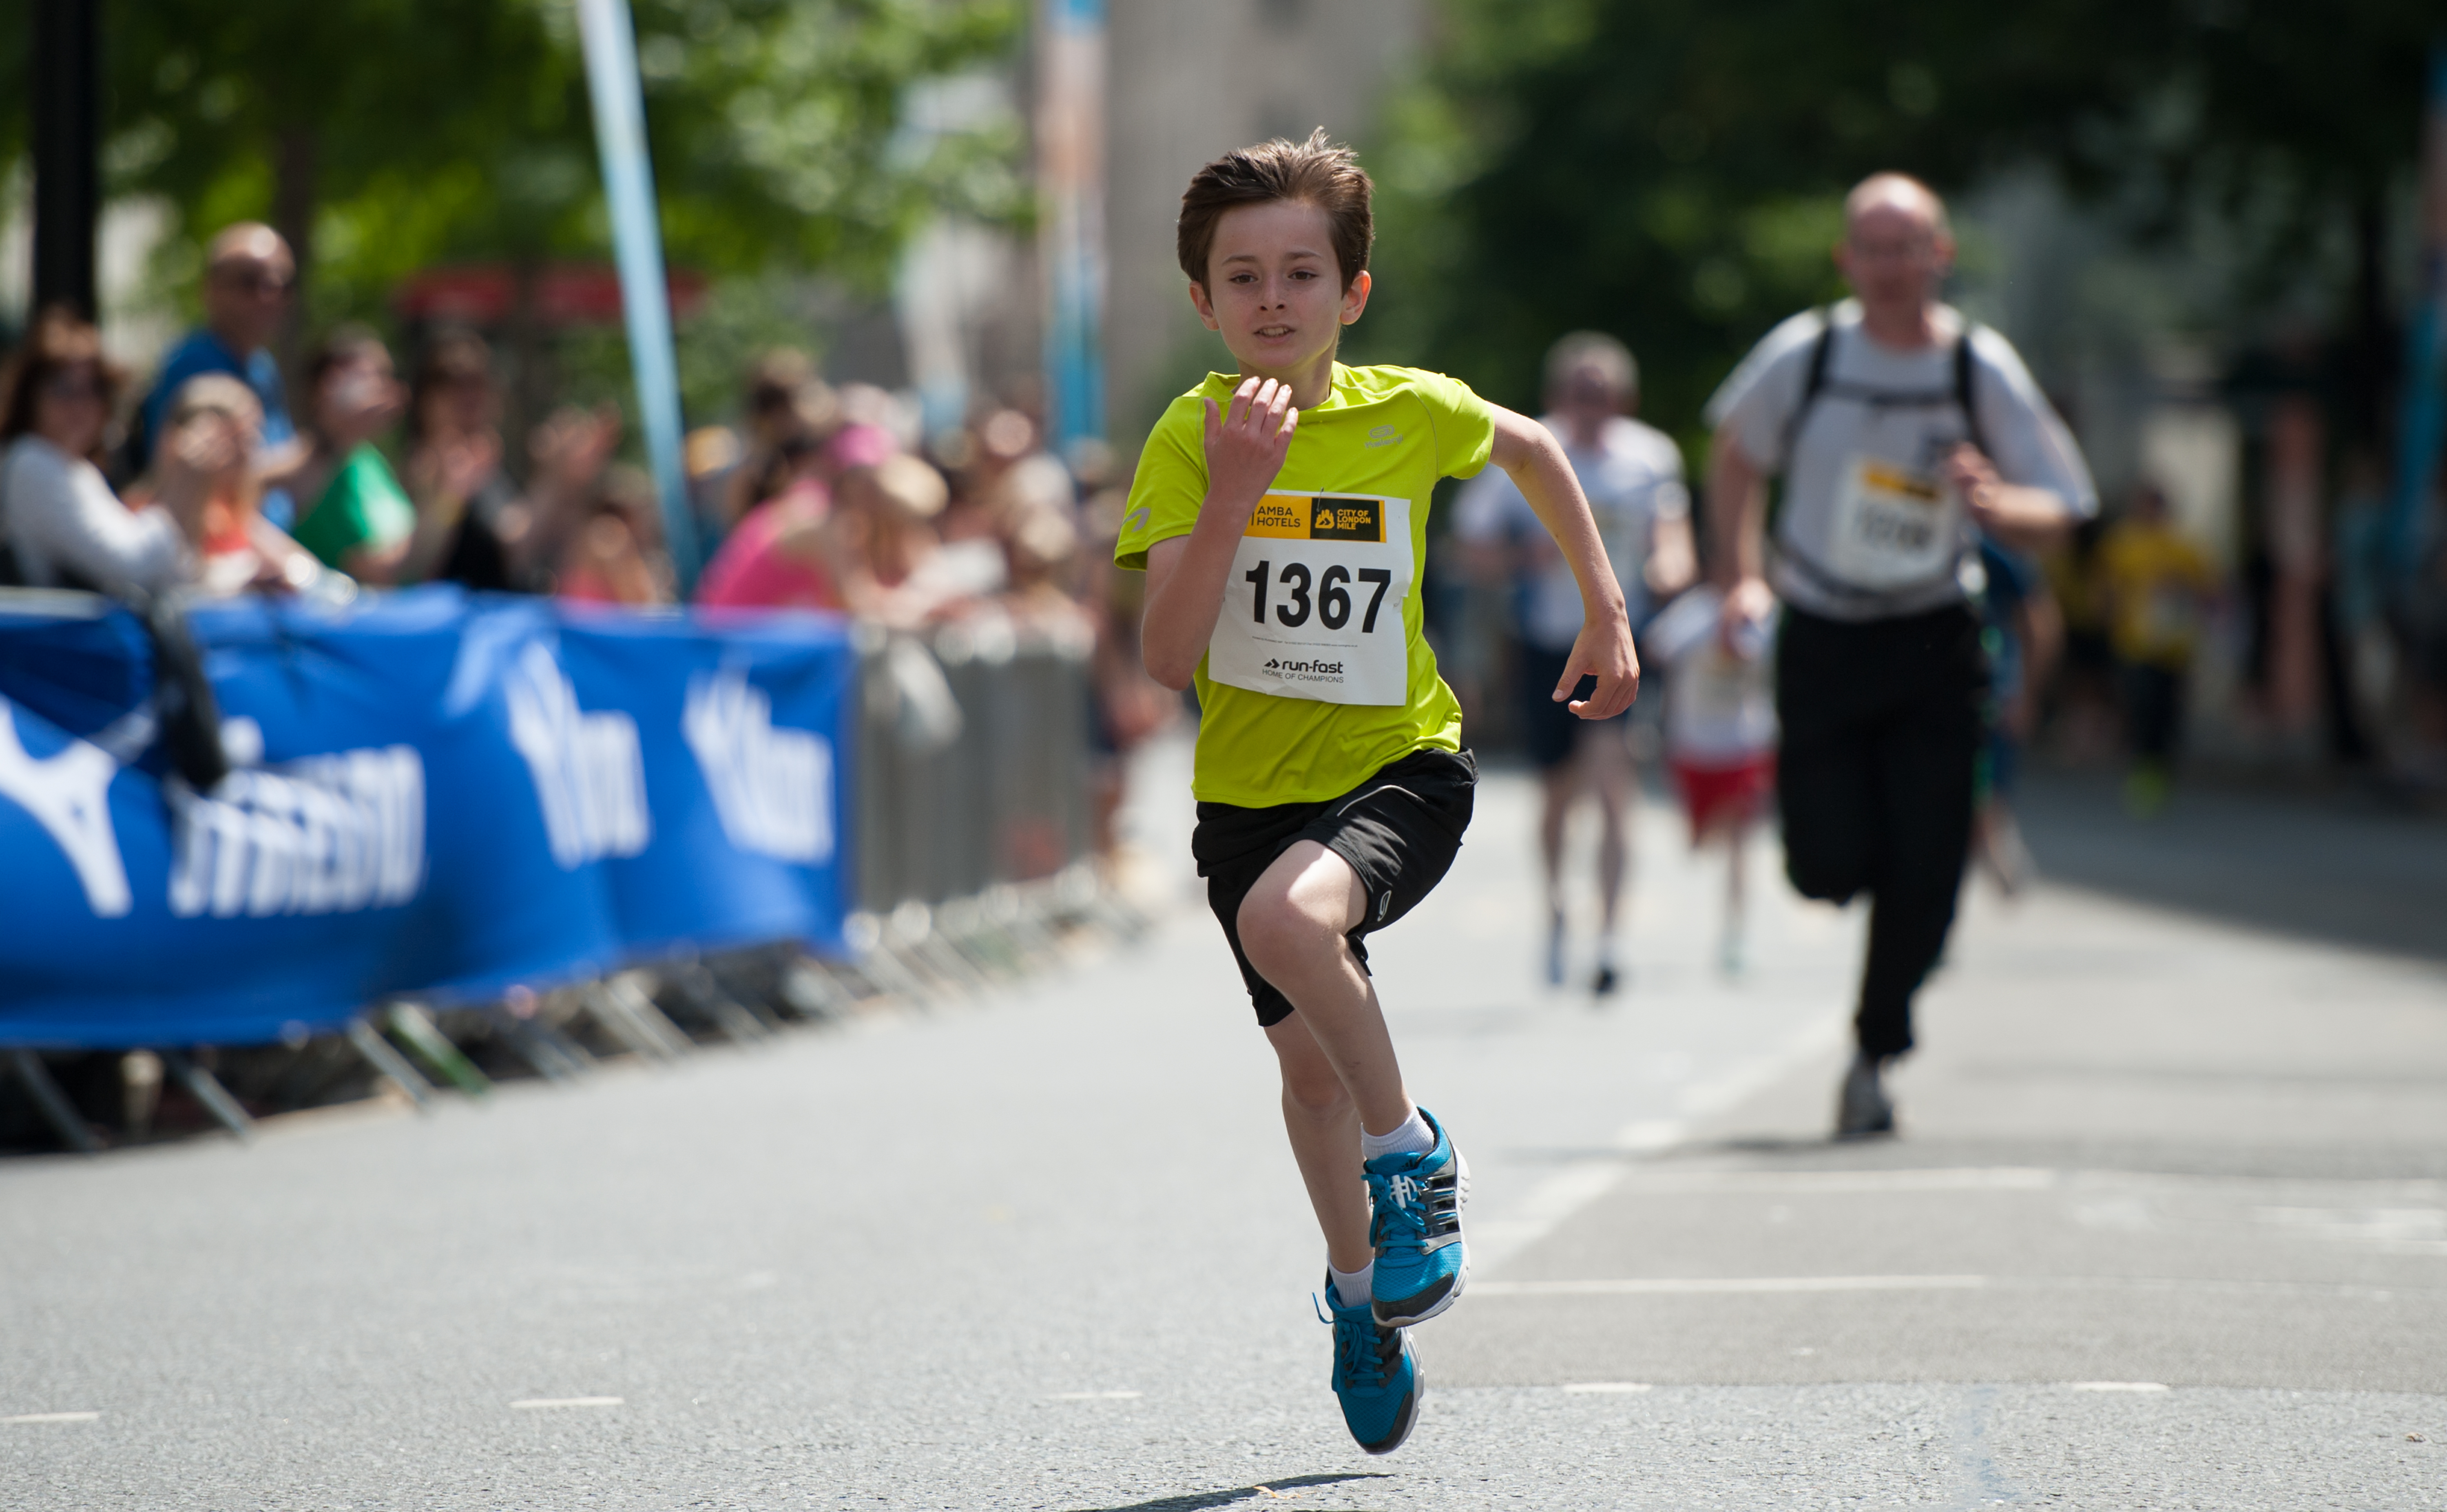 Youth Race Competitor